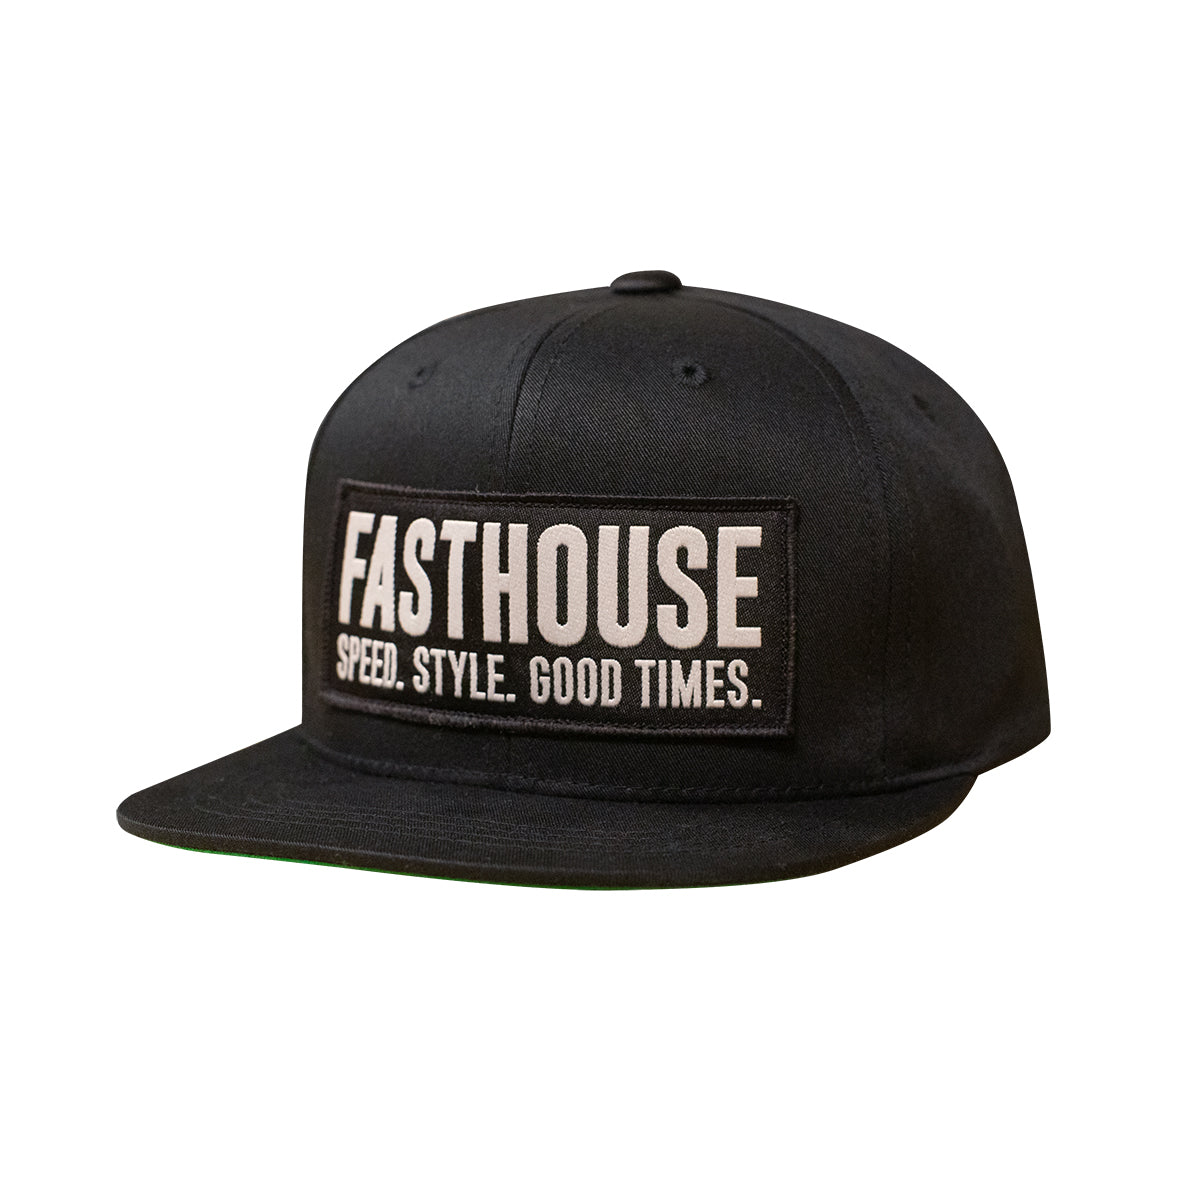 Blockhouse Youth Hat - Black